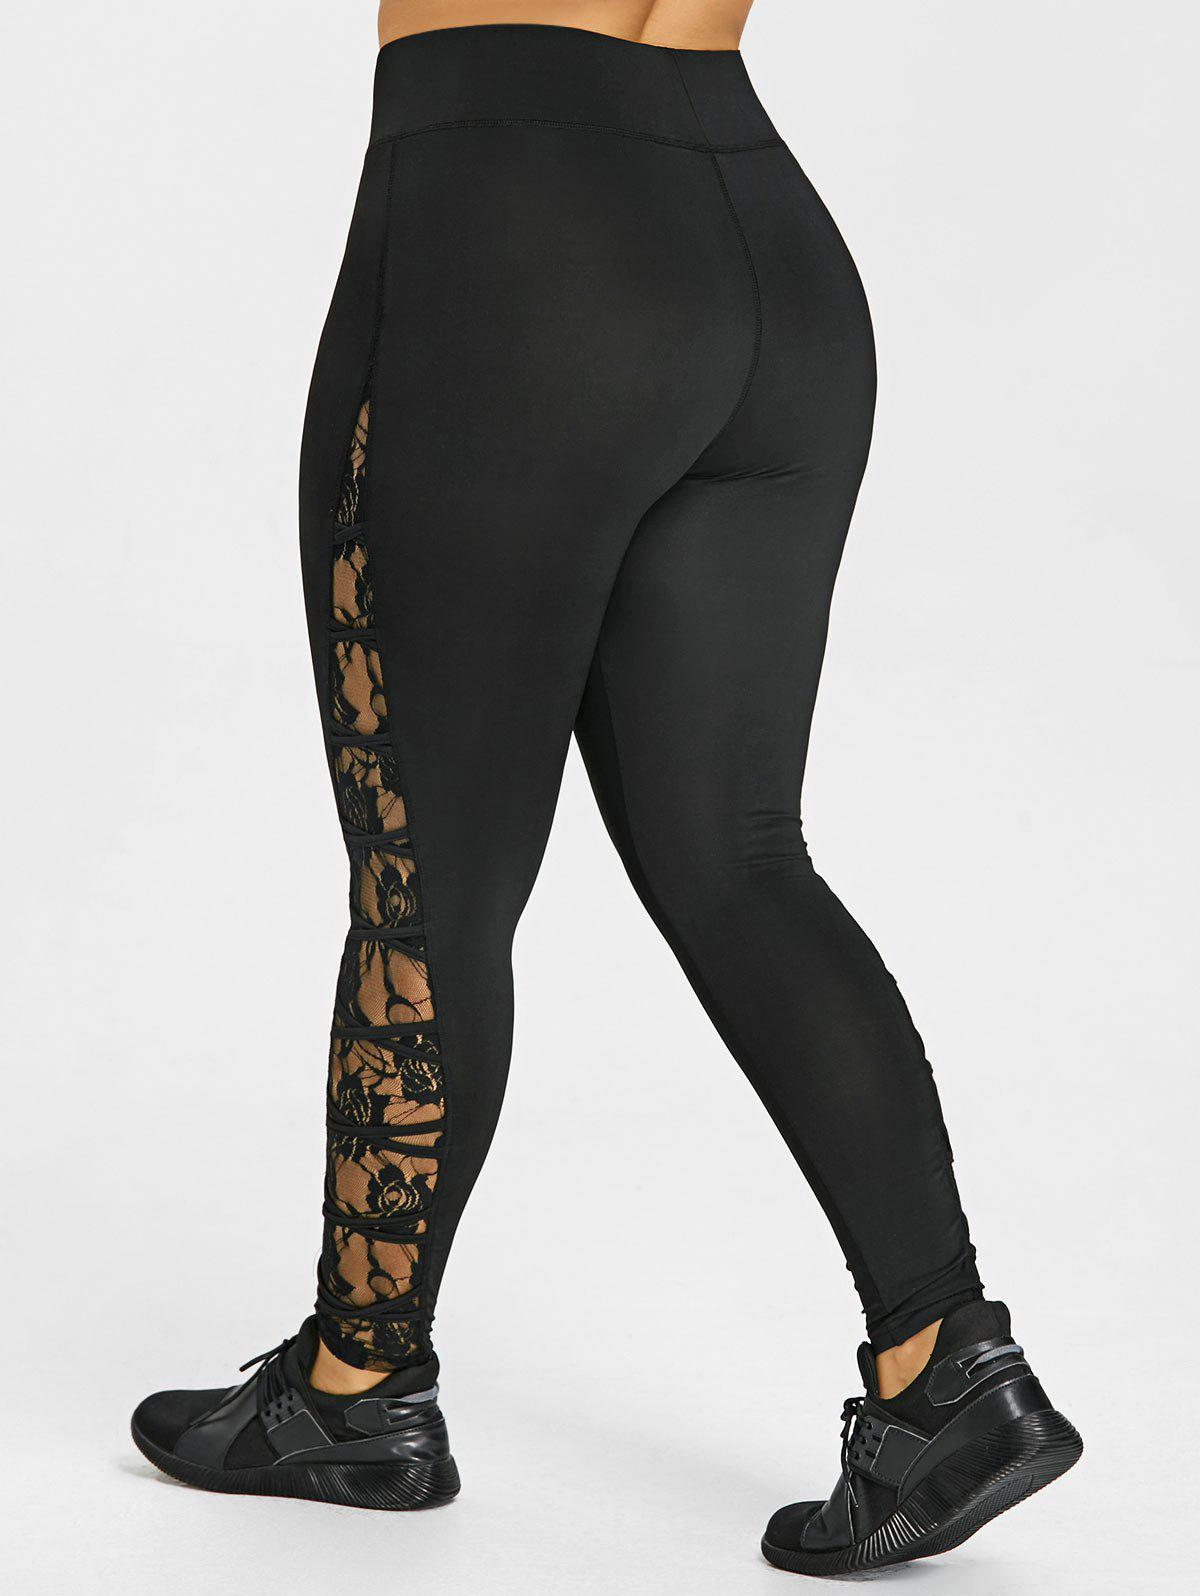 Plus Size Criss Cross Lace Panel Leggings - BLACK XL